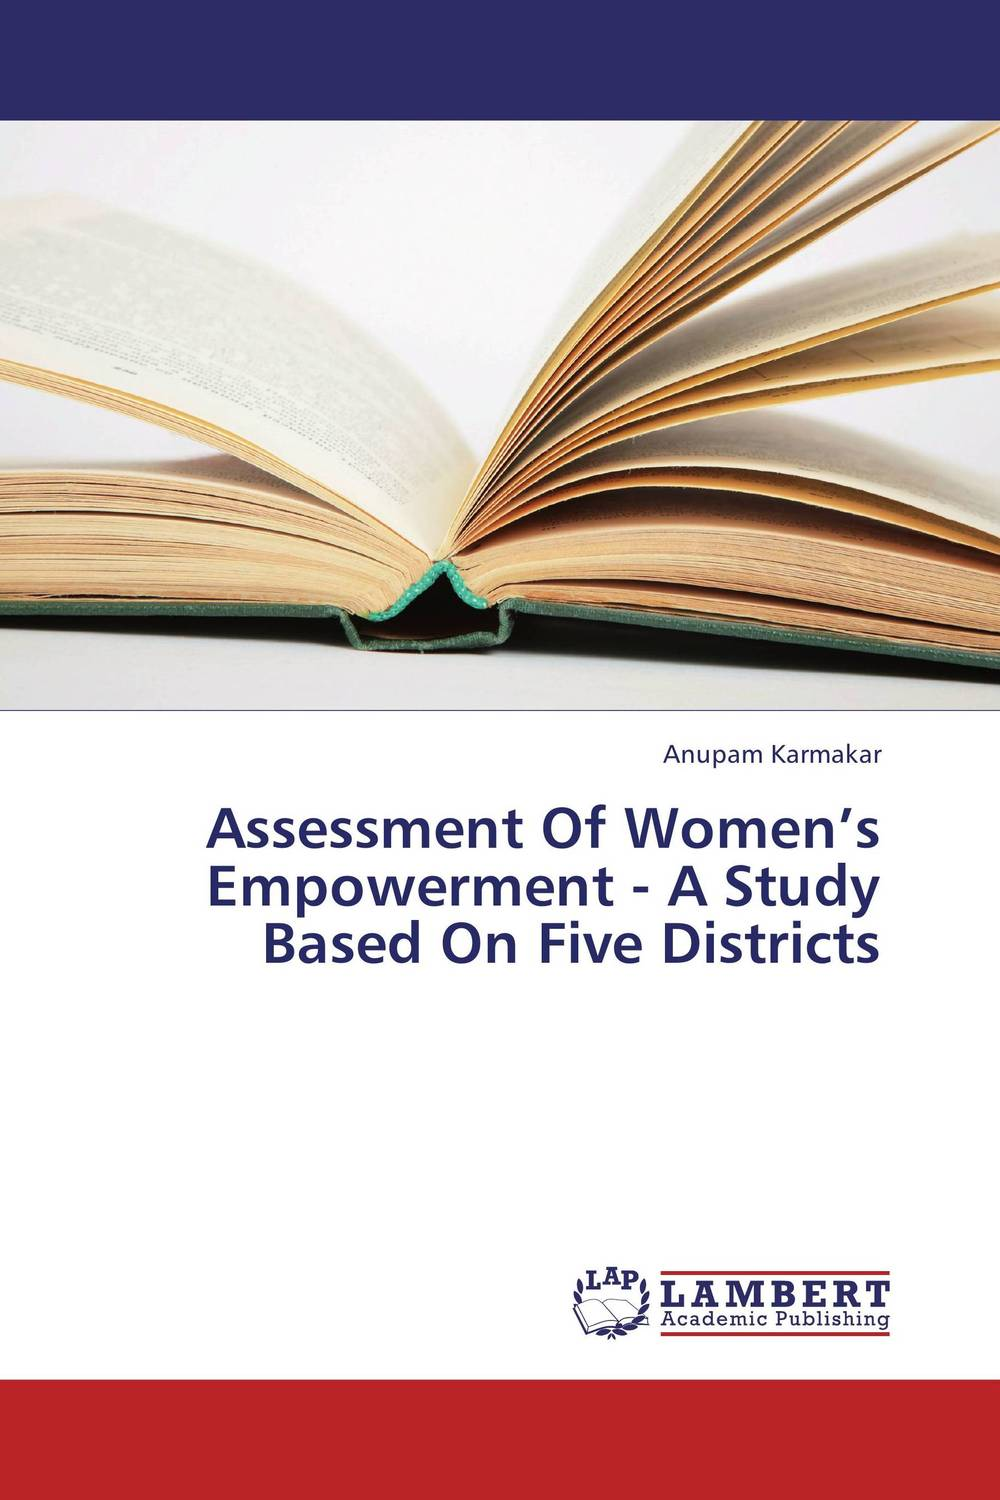 Assessment Of Women's Empowerment - A Study Based On Five Districts